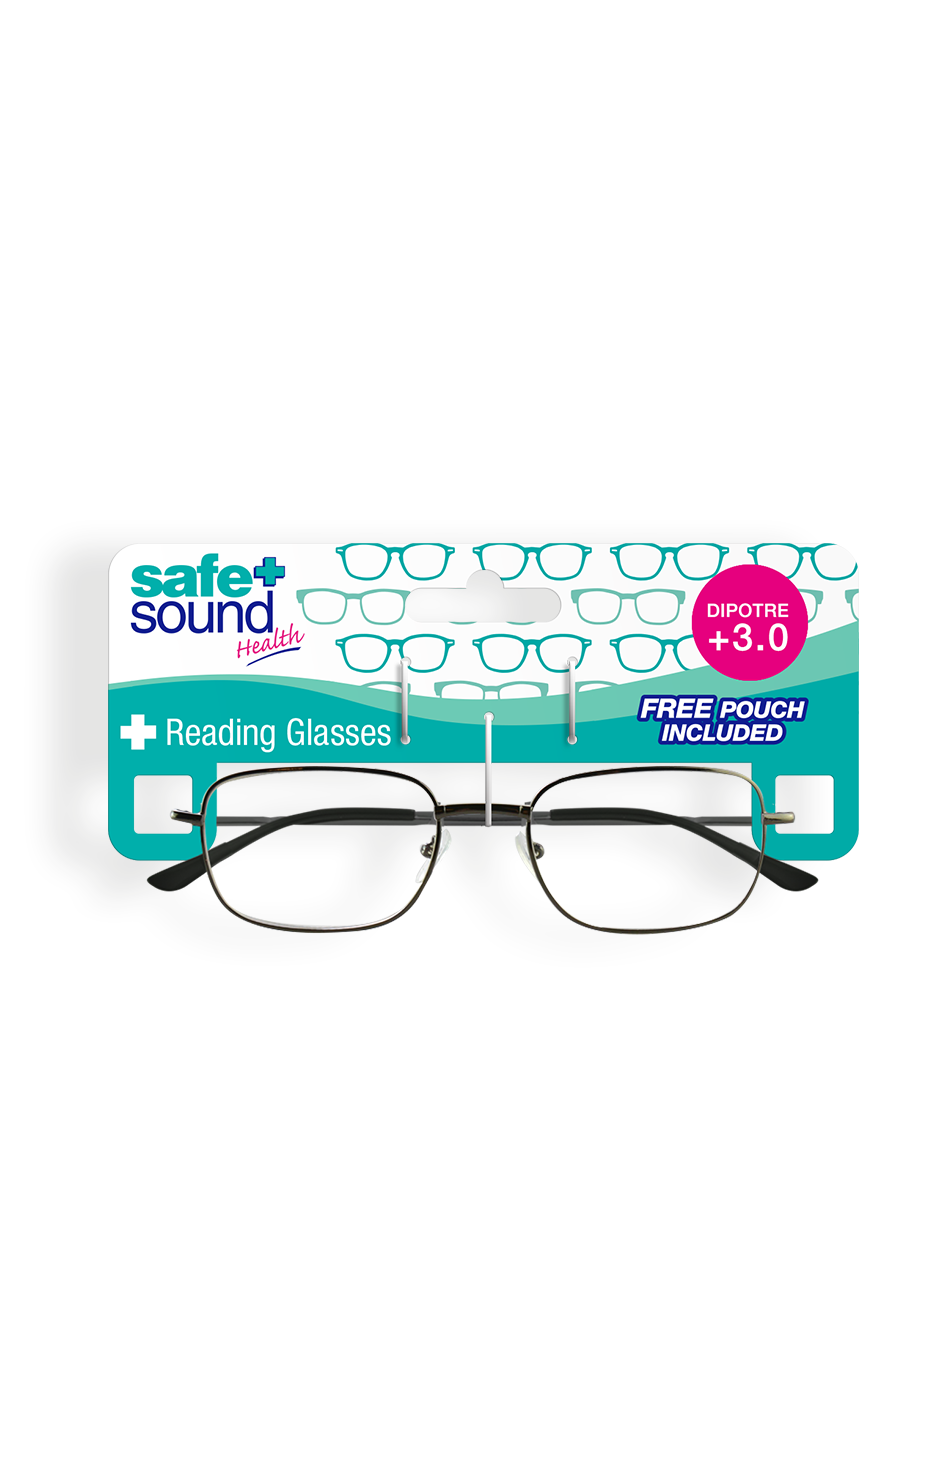 Safe and Sound Health Matt Black Reading Glasses 3.0 Dioptre